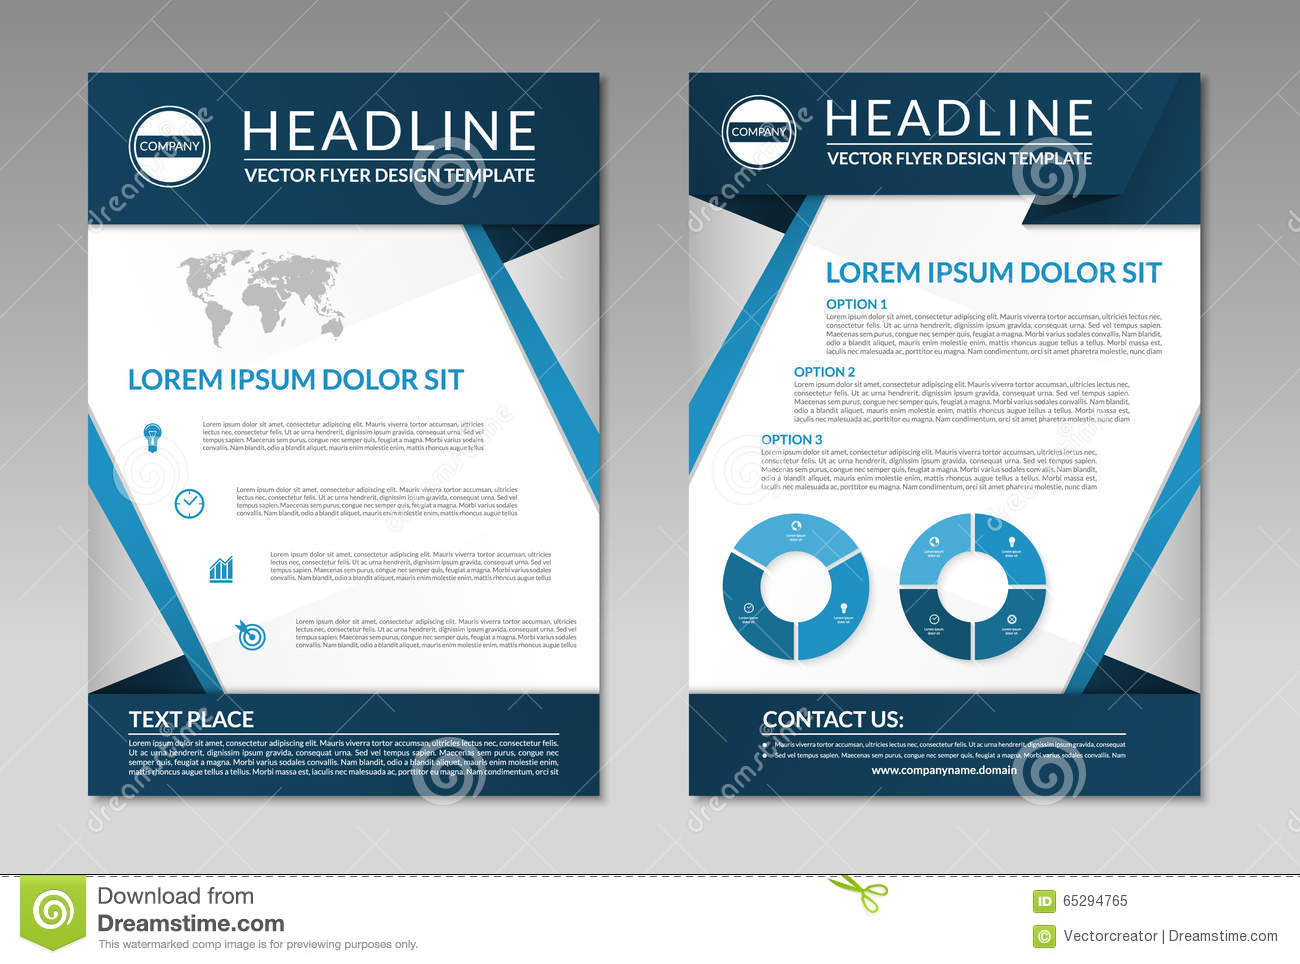 handout design templates - gse.bookbinder.co, Powerpoint templates